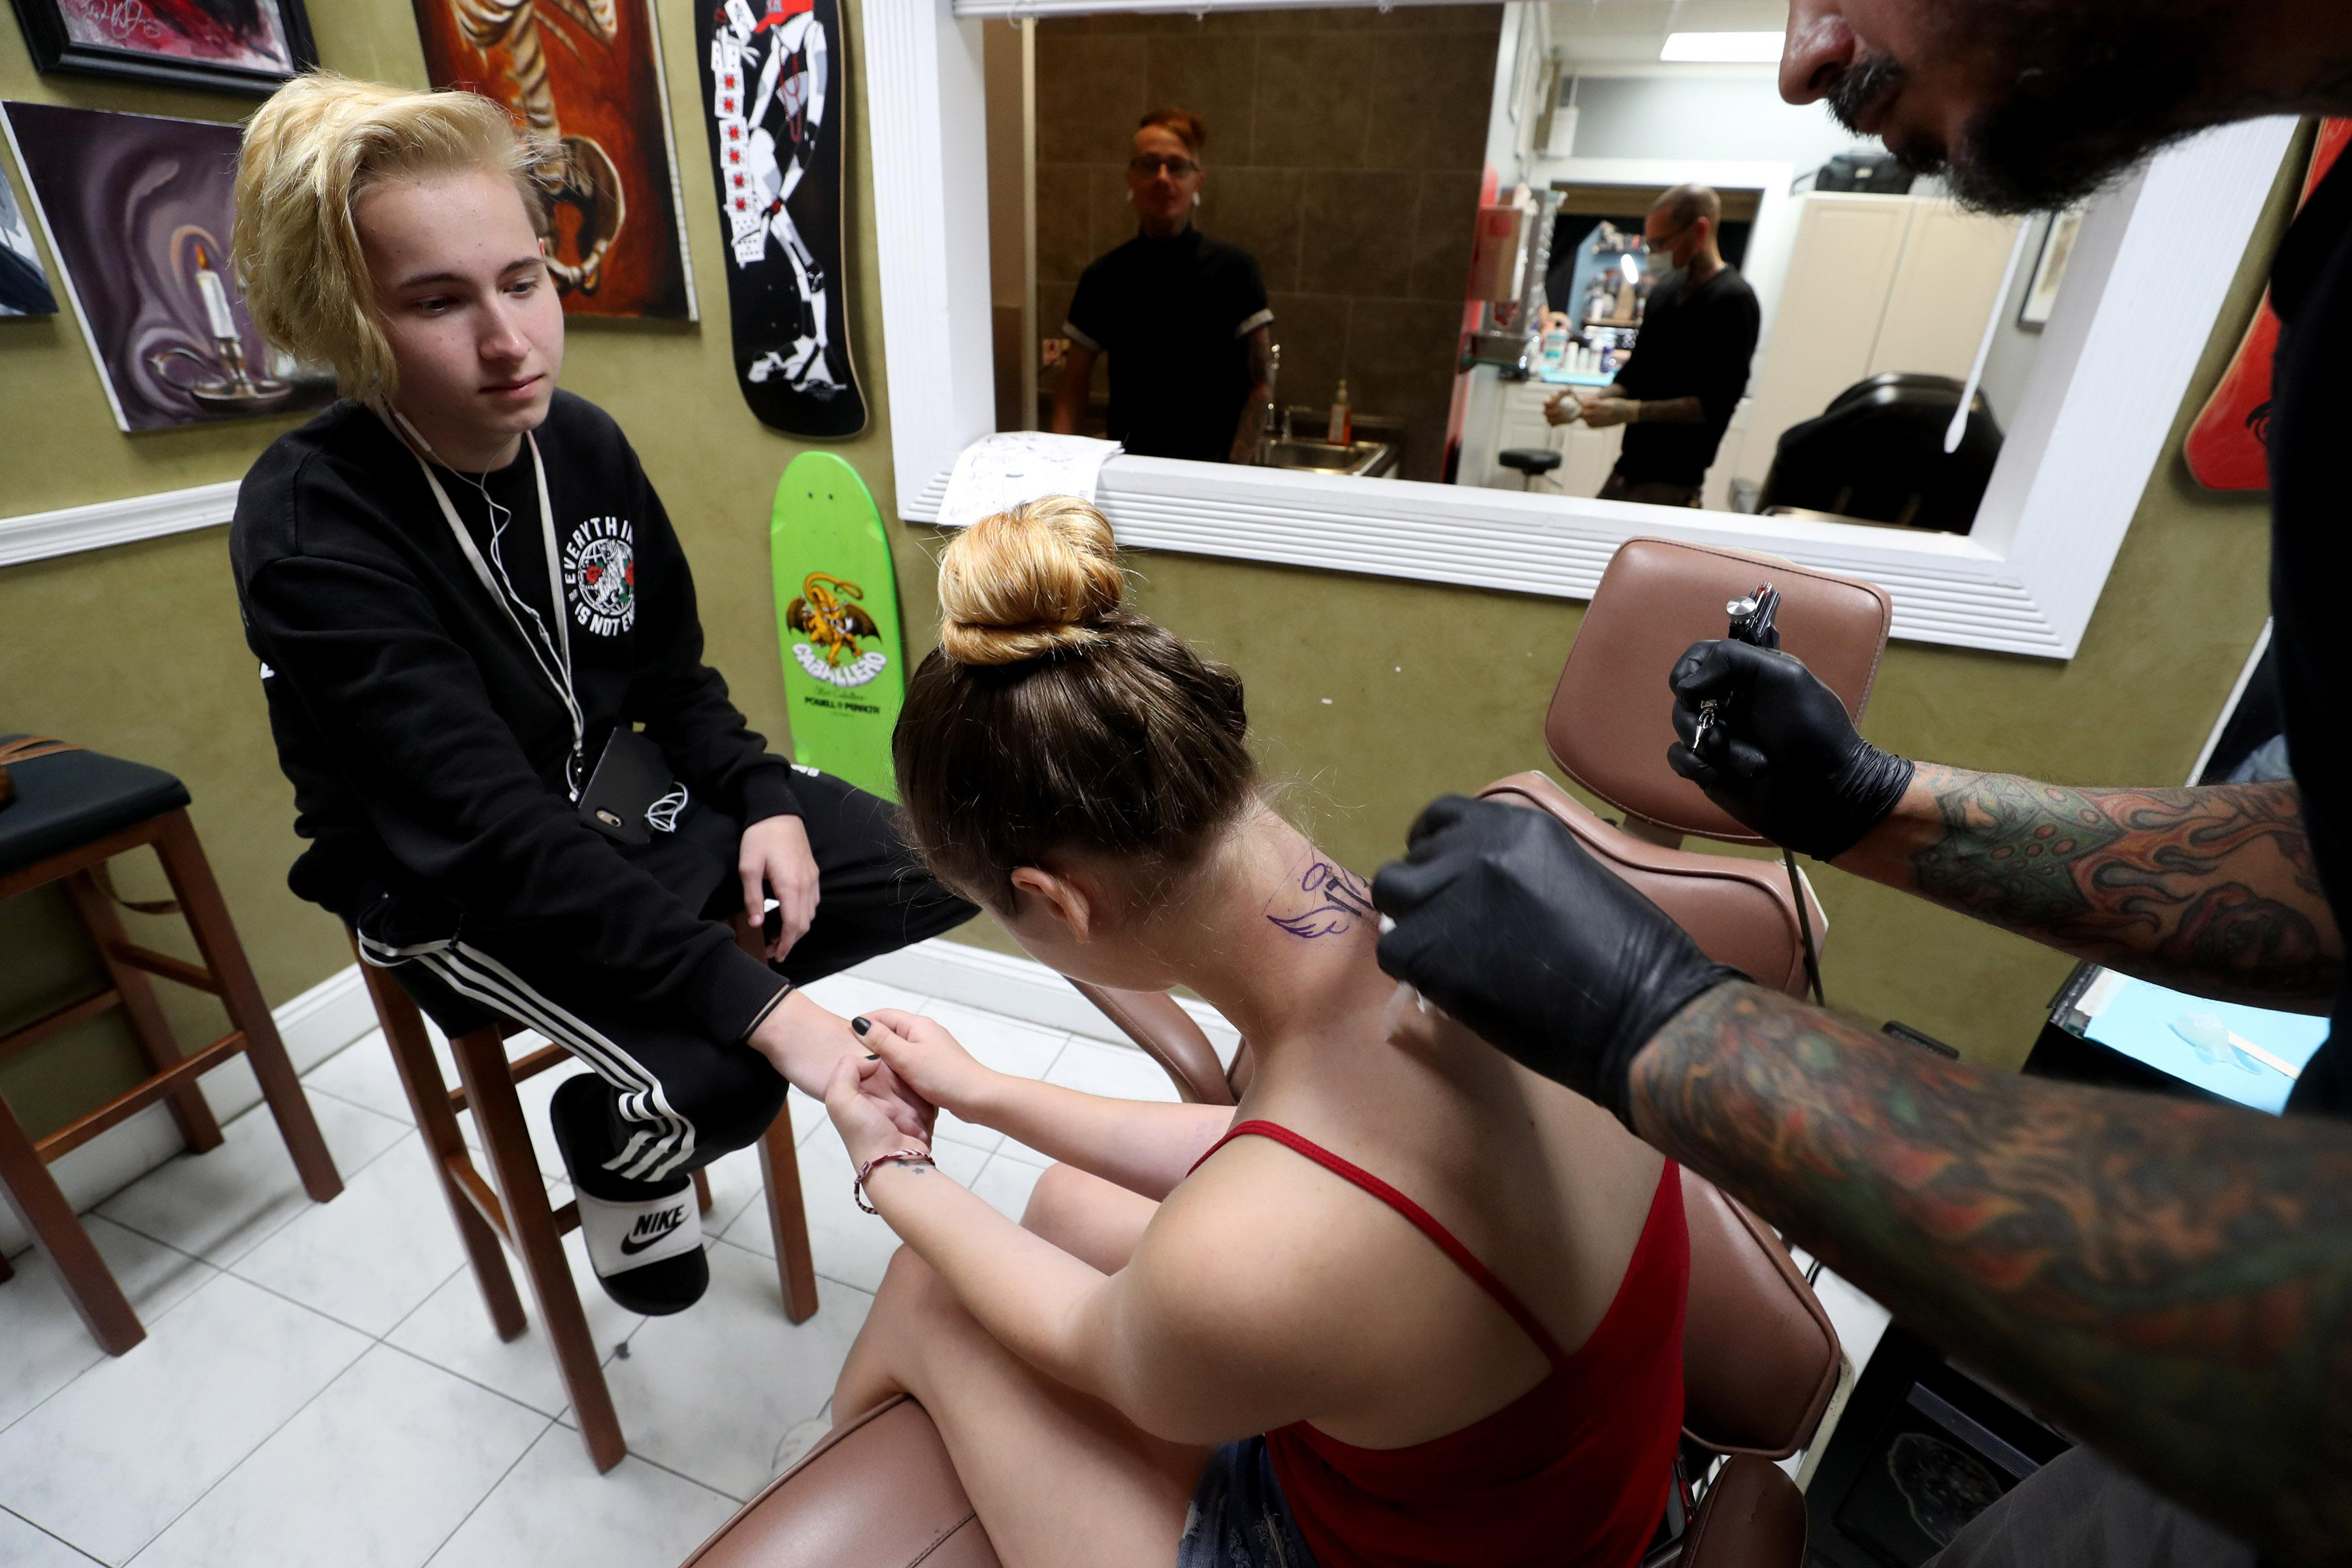 Justus Culver, 16, a Marjory Stoneman Douglas student, holds the hand of friend Rio Gonzales, 17, a Coral Springs High student, as she gets the number 17 and angel wings tattooed to the back of her neck by artist Ted Mendoza of No Hard Feelings Tattoo Gallery in Coral Springs.  The tattoo shop  along with nine other tattoo artists and body piercers, offered a day of free tattoos to the community with donations going toward the families and victims of the Marjory Stoneman Douglas shooting.{ }(Susan Stocker/South Florida Sun-Sentinel via AP)